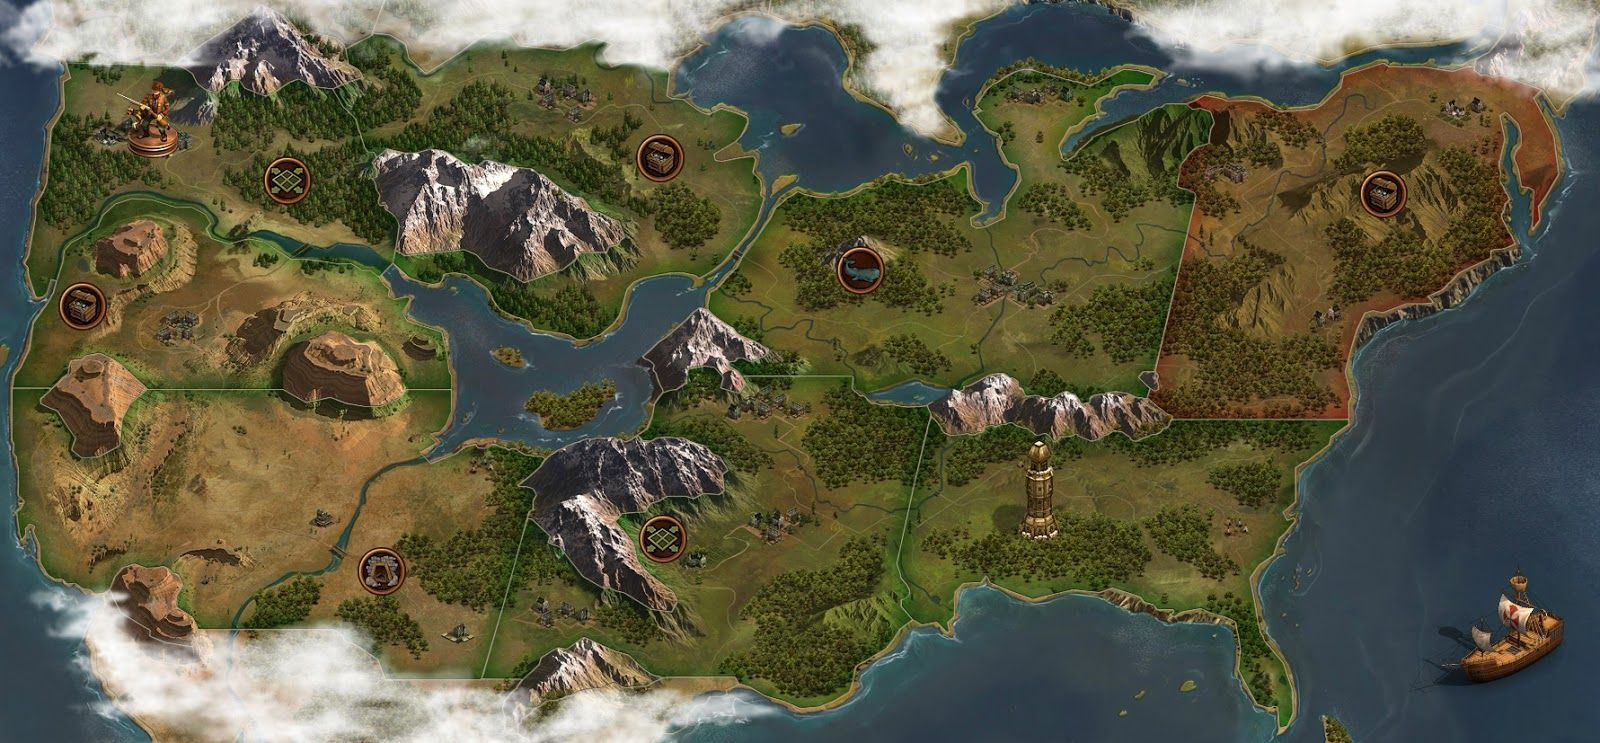 Pc game reviews and news forge of empires launches the industrial pc game reviews and news forge of empires launches the industrial age gumiabroncs Image collections